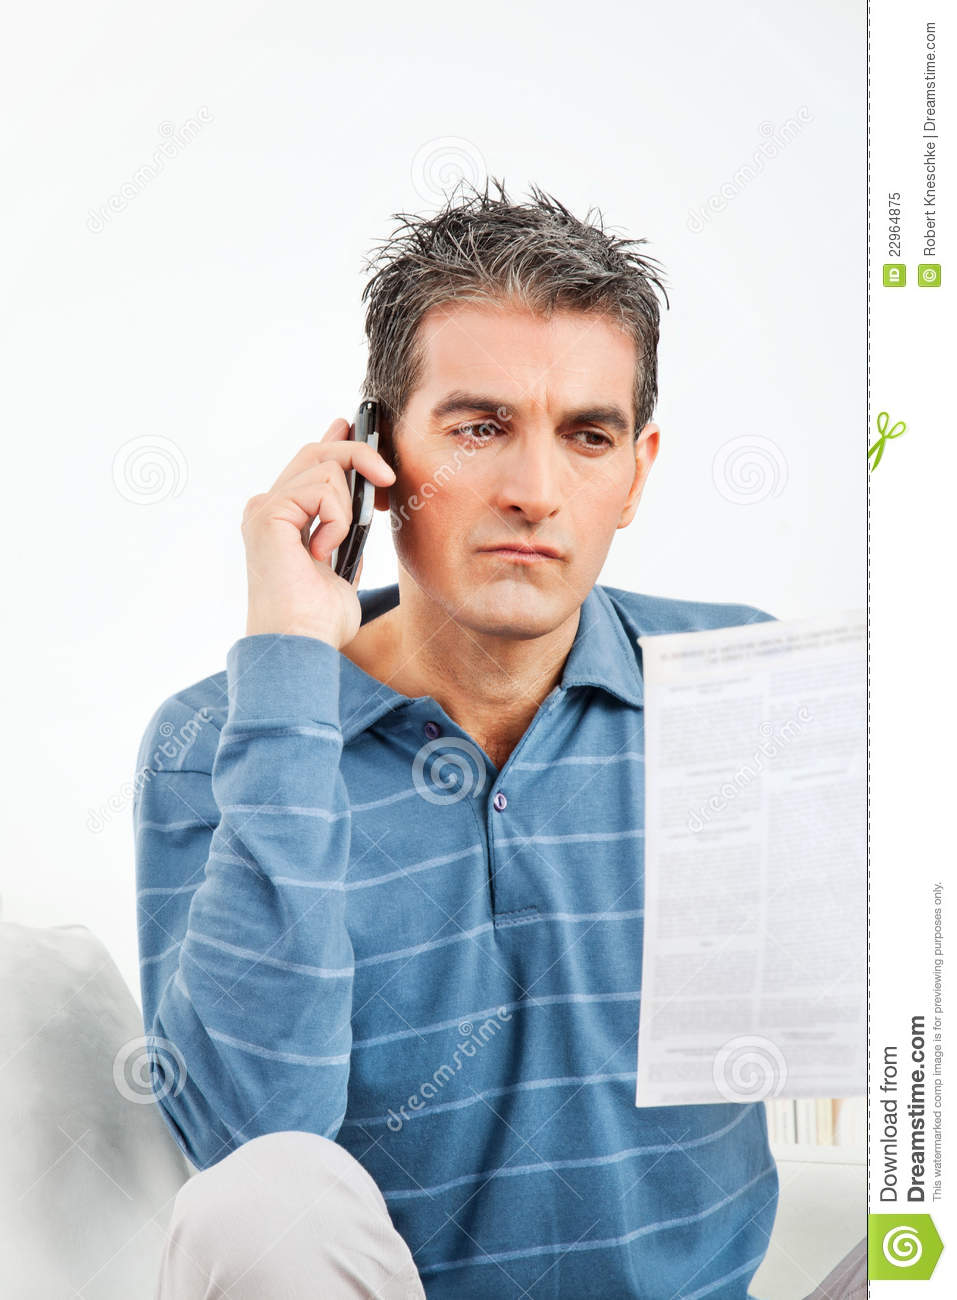 Man On Cell Phone : Man with cell phone and bill stock image